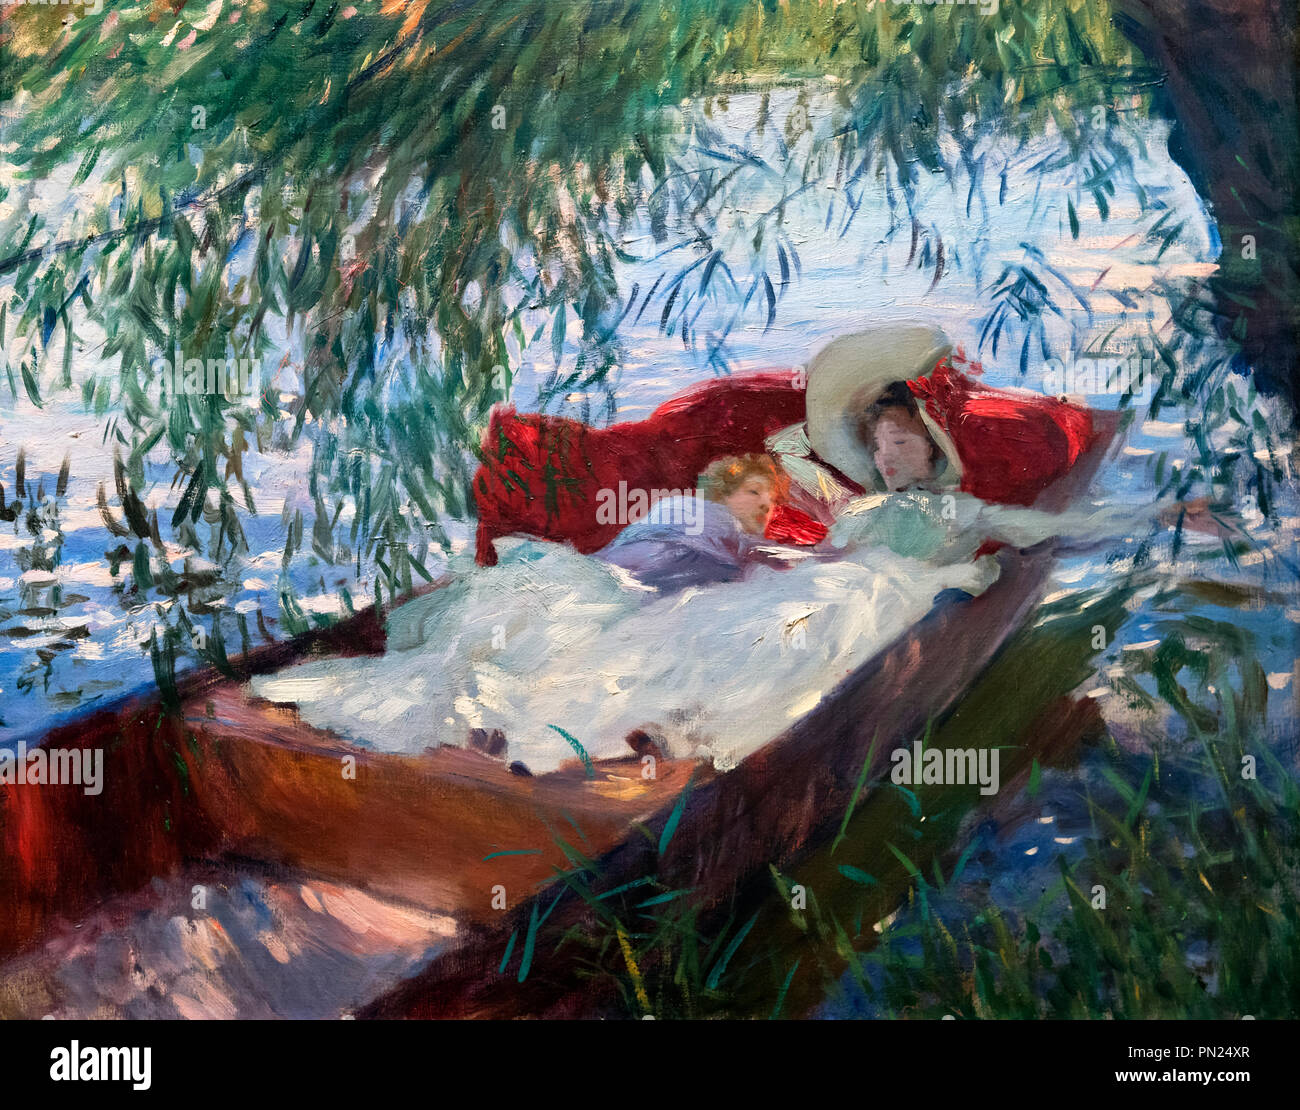 Painting by John Singer Sargent (1856-1925) entitled 'Lady and Child Asleep in a Punt under the Willows', oil on canvas, 1887 - Stock Image